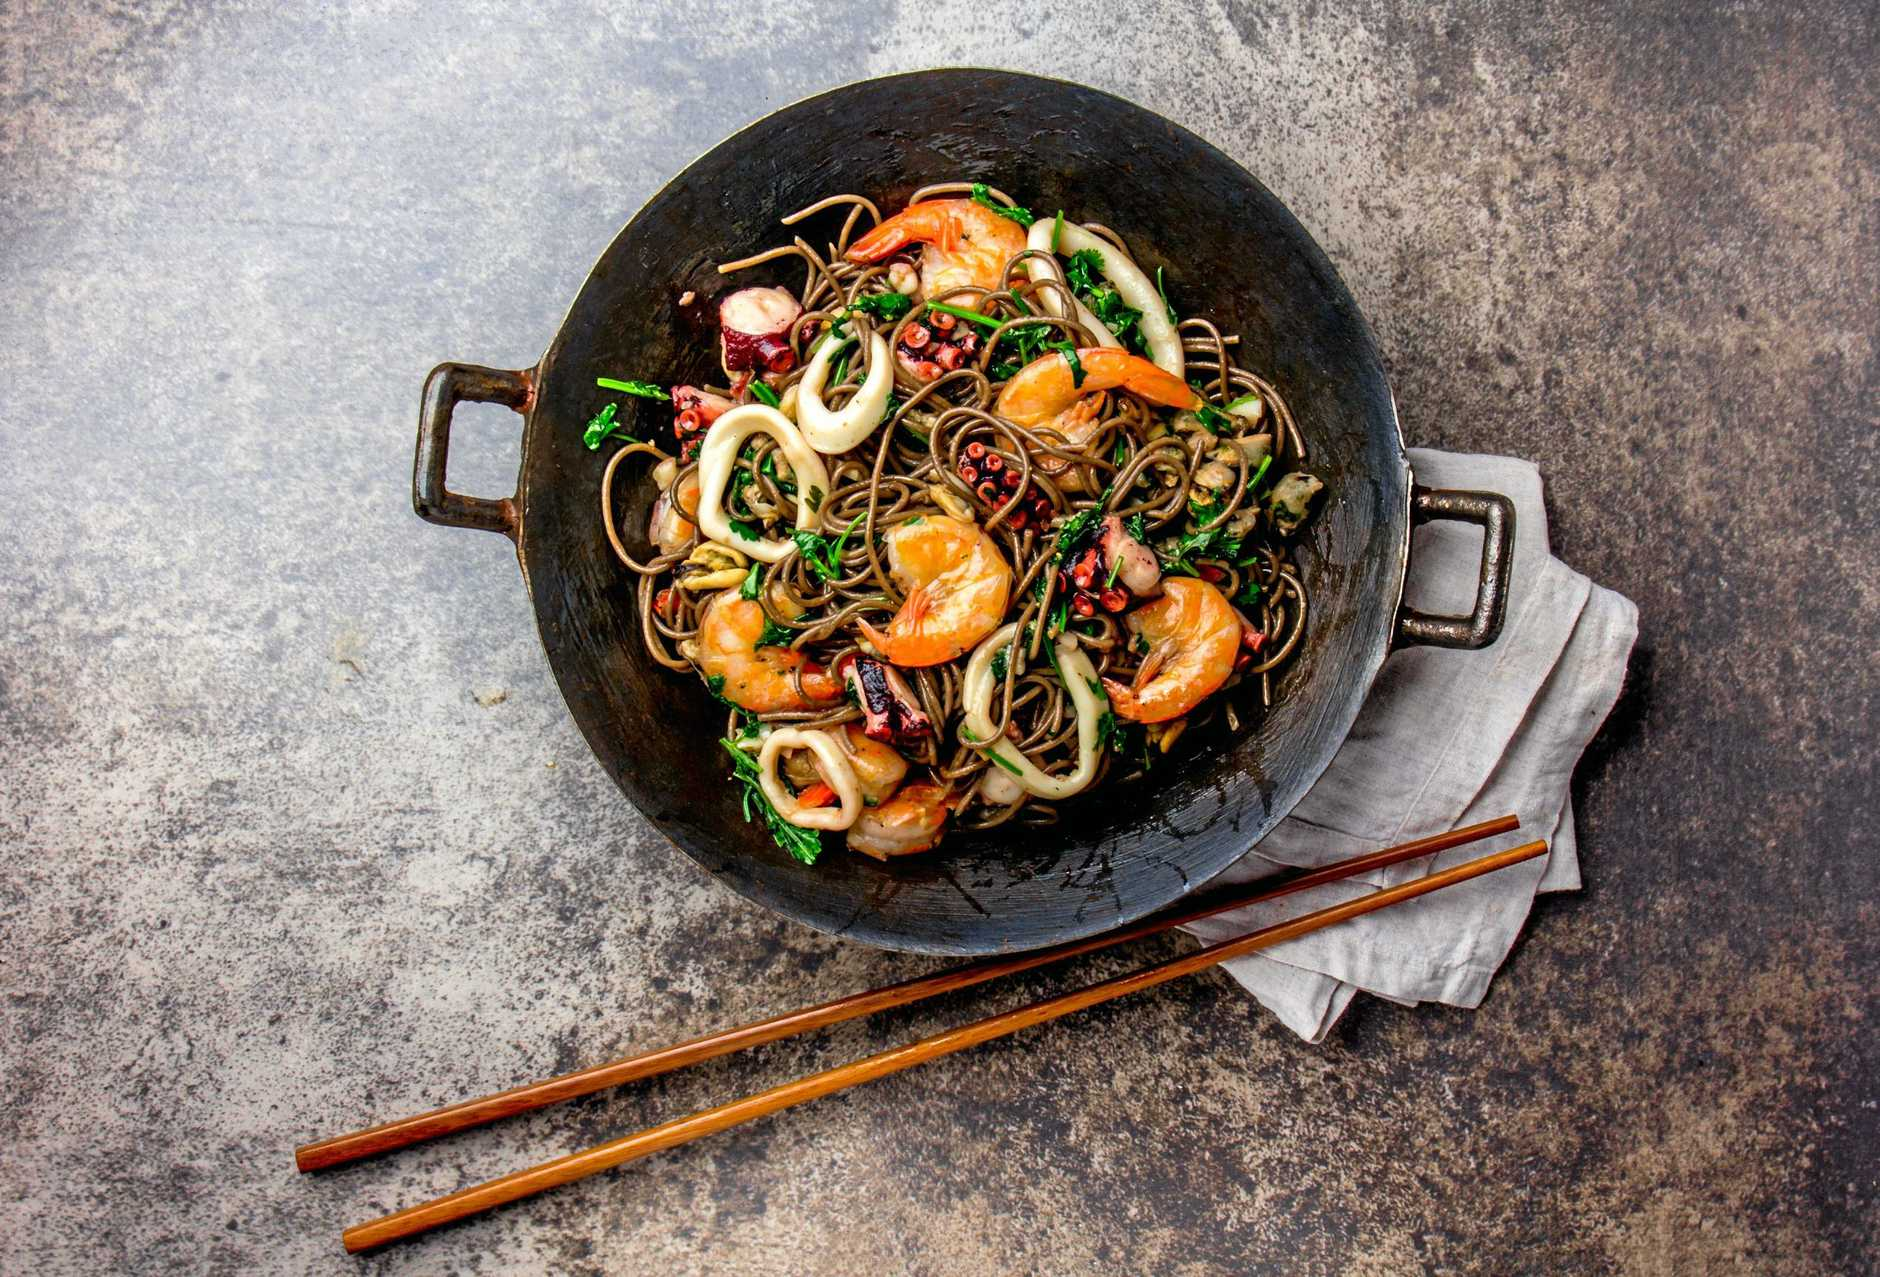 Queensland has become a destination for Asian food. We've picked the best Asian restaurants in the state. Here are the top 10.